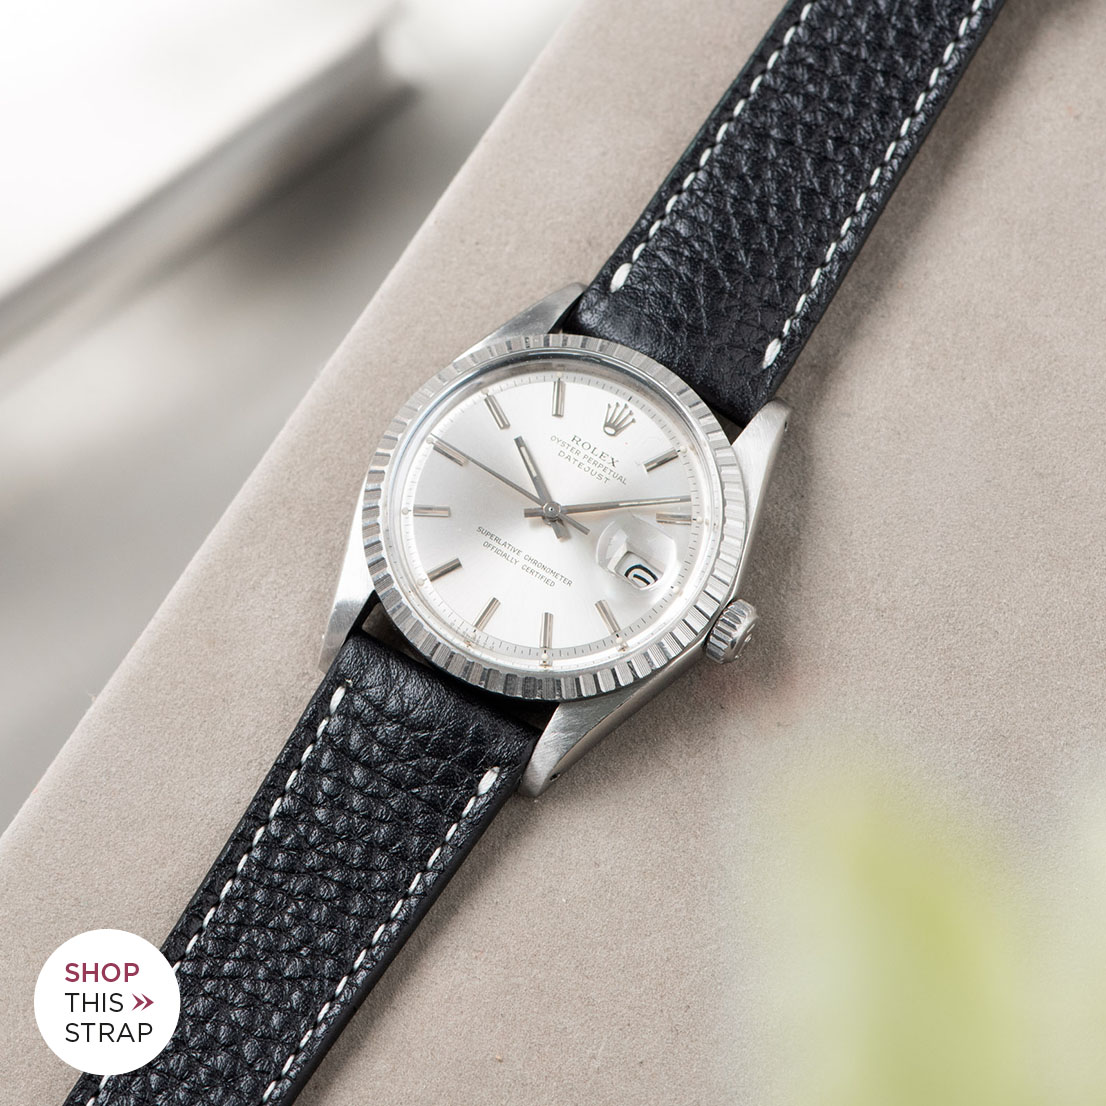 Bulang and sons_Strap Guide_Rolex Datejust Silverdial 1601 1603 1600 1630_RICH BLACK CREME STITCH LEATHER WATCH STRAP